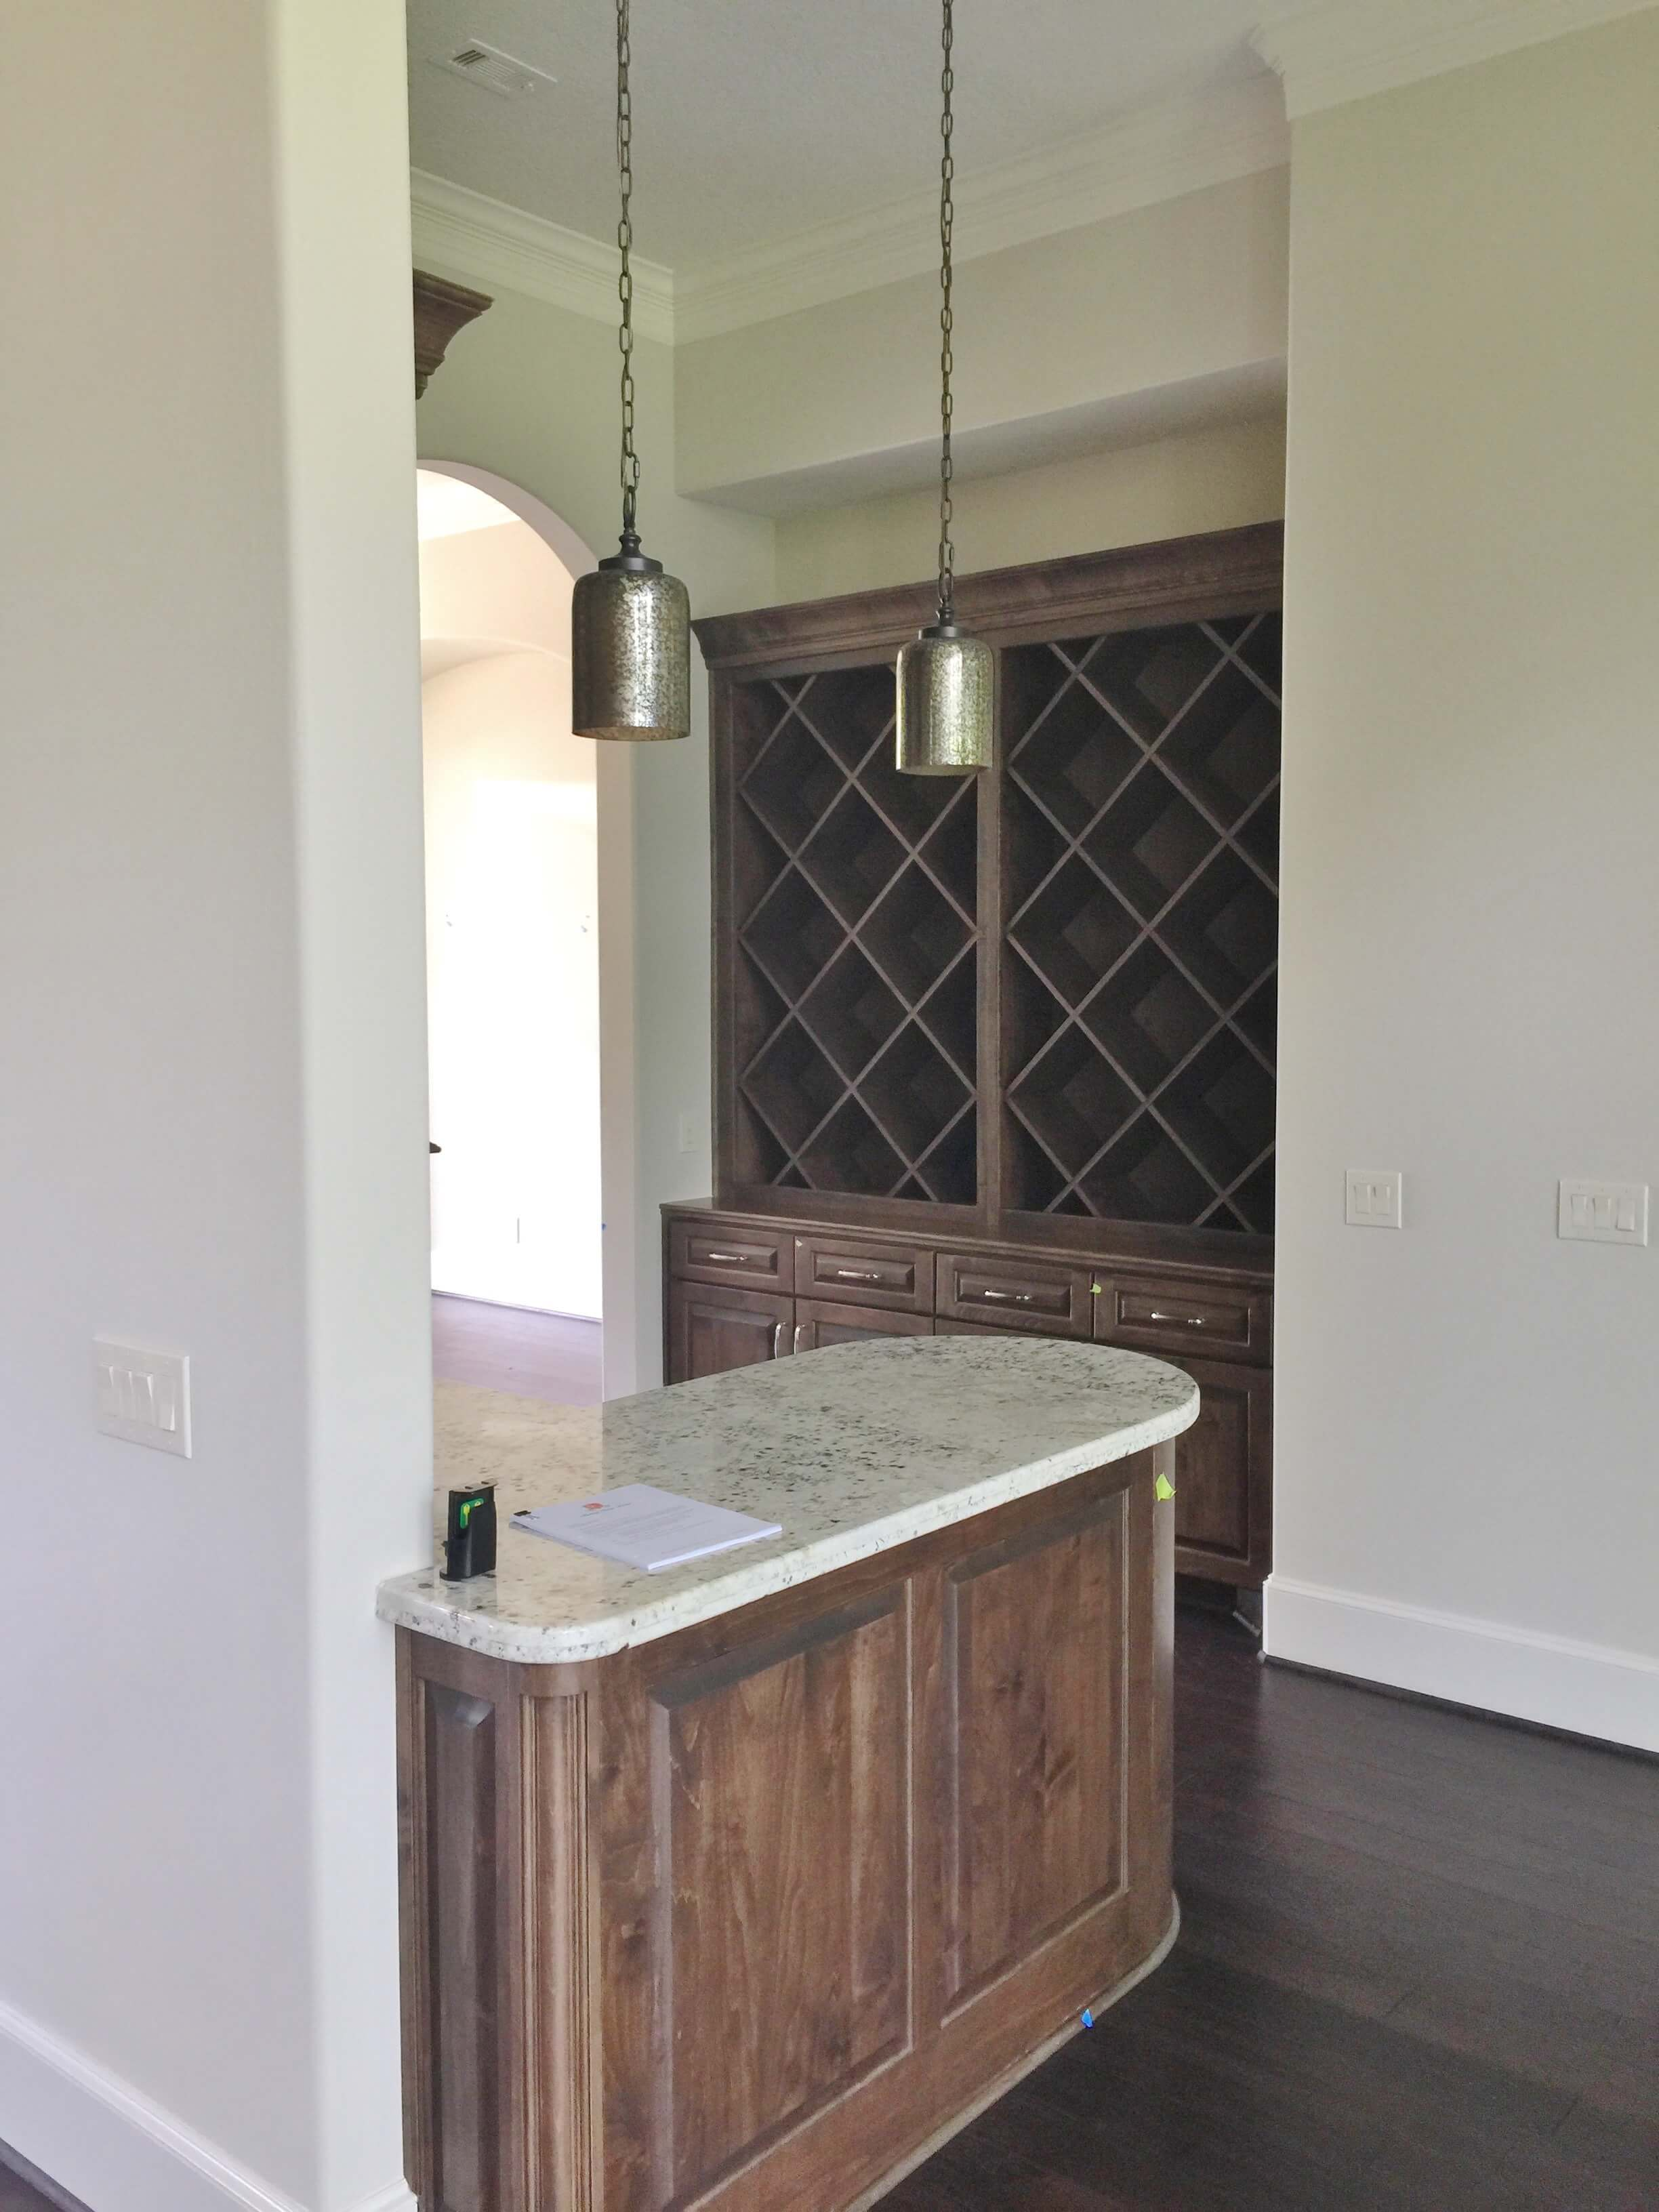 BEFORE PIC - Home wine bar transformation | #remodeling #cabinetry #butlerspantry